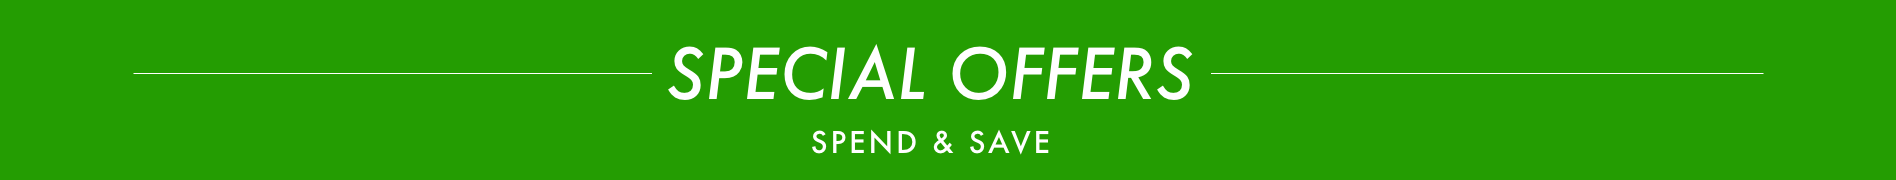 special offers - spend and save